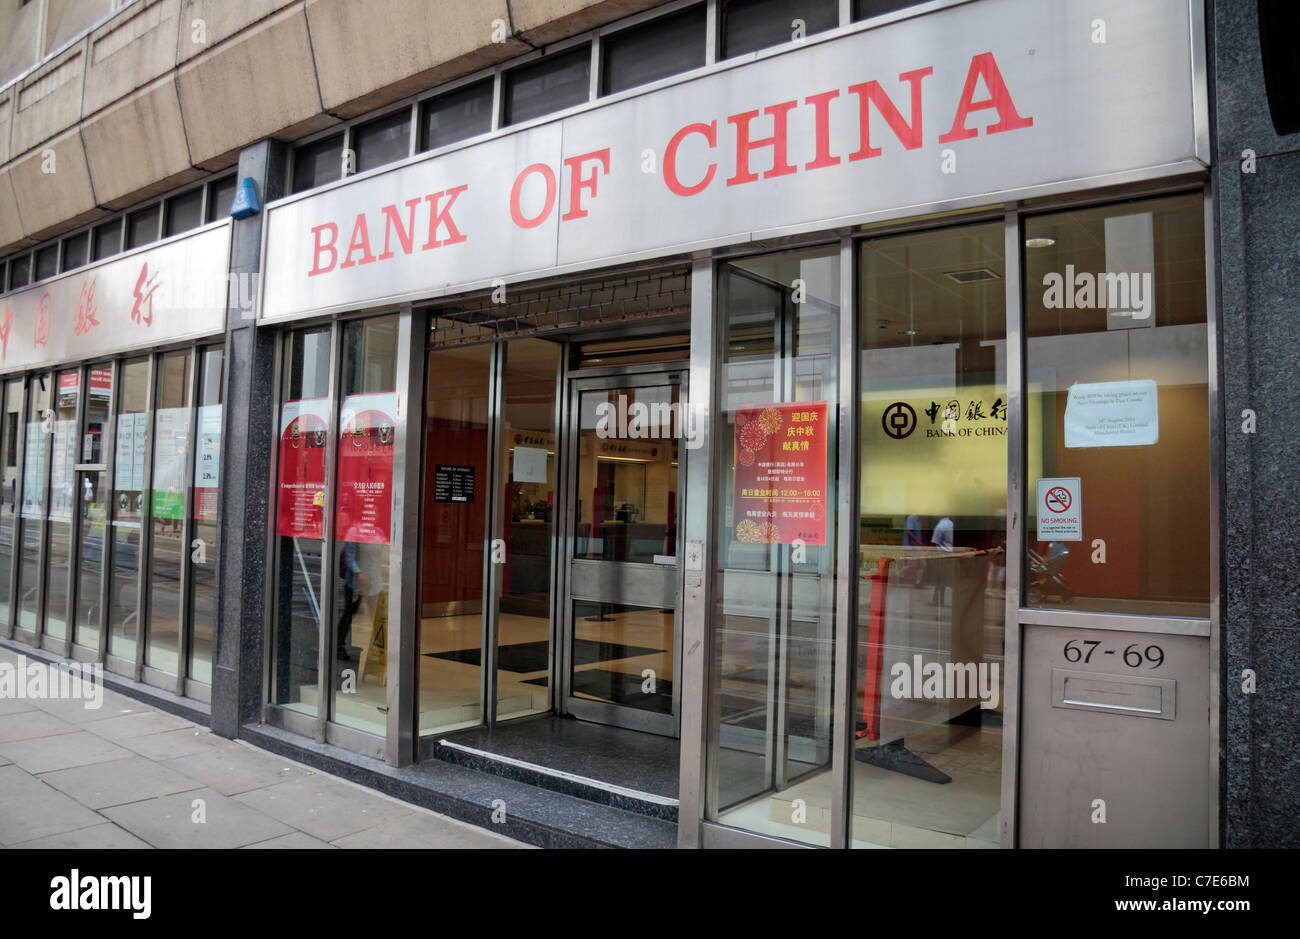 Entrance to the Bank of China branch on Mosley Street, Manchester, UK. - Stock Image